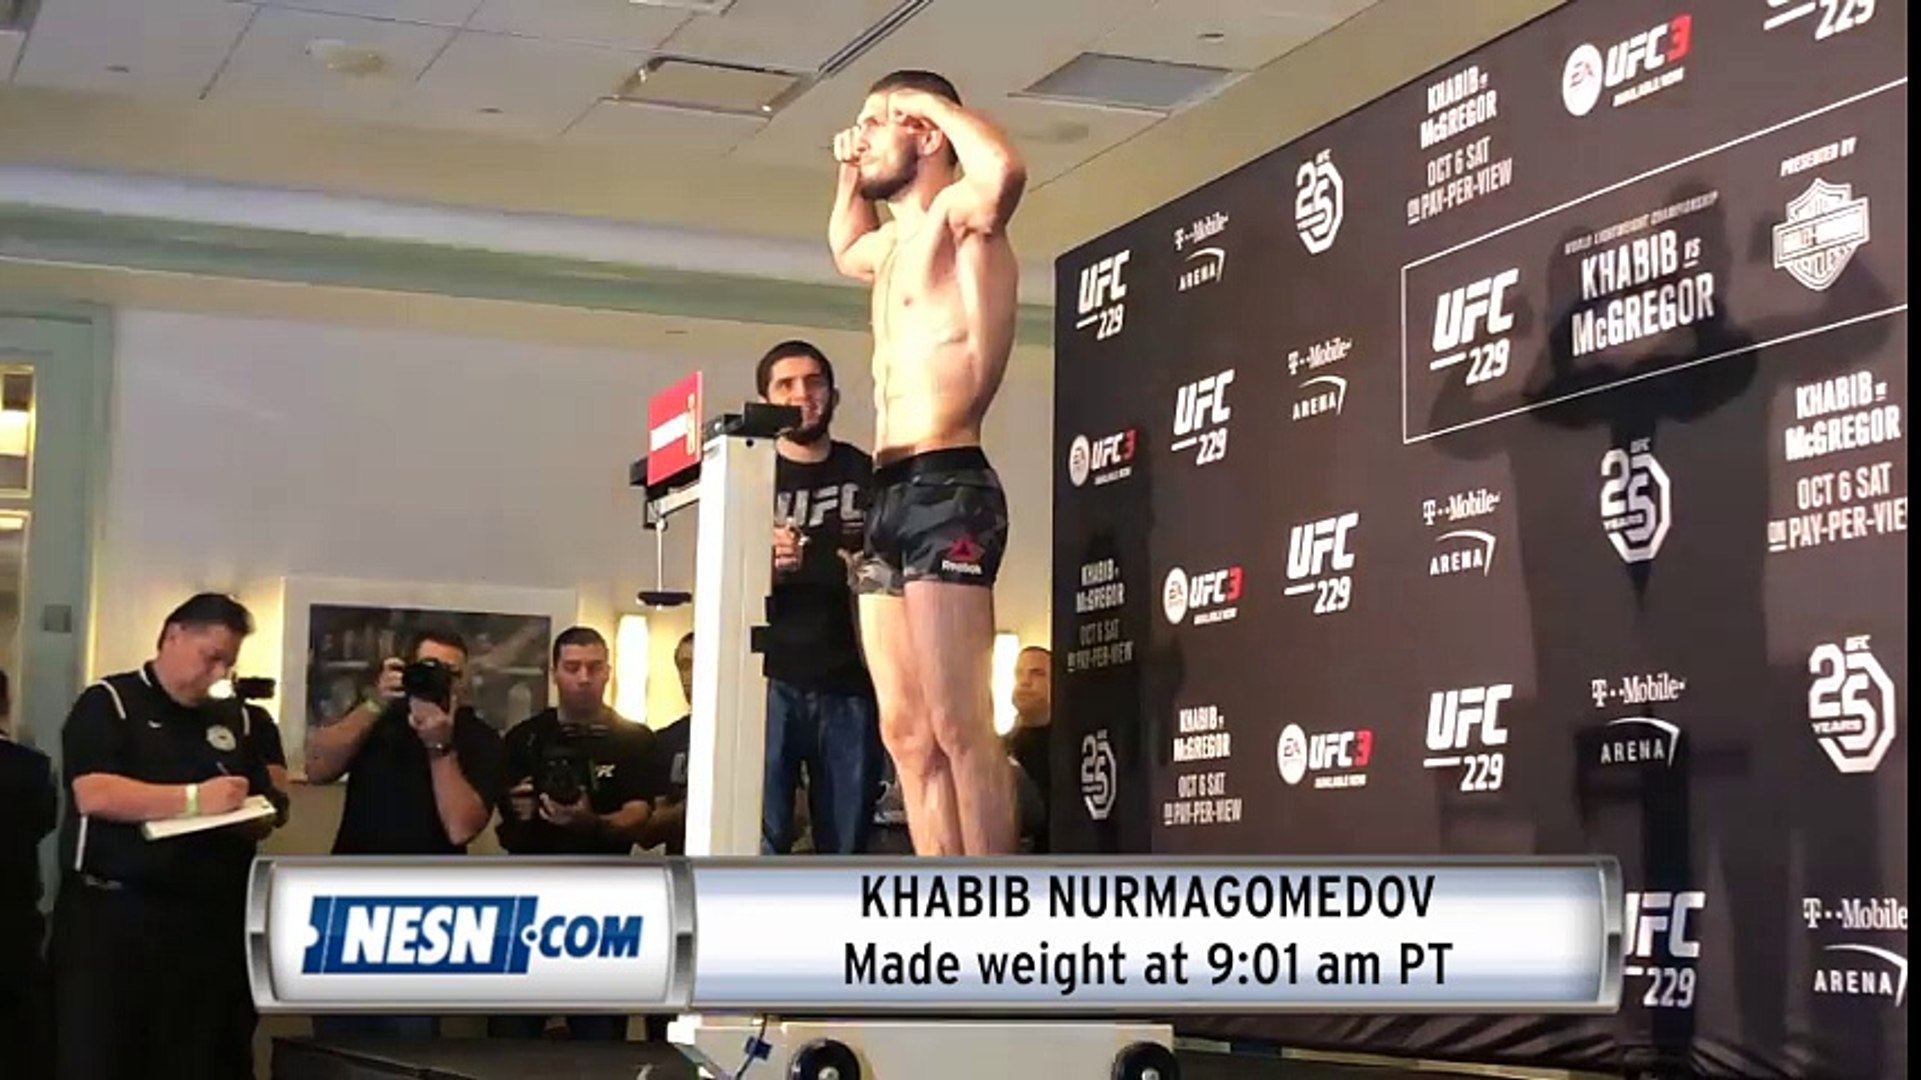 Khabib Nurmagomedov first to make weight for UFC 229